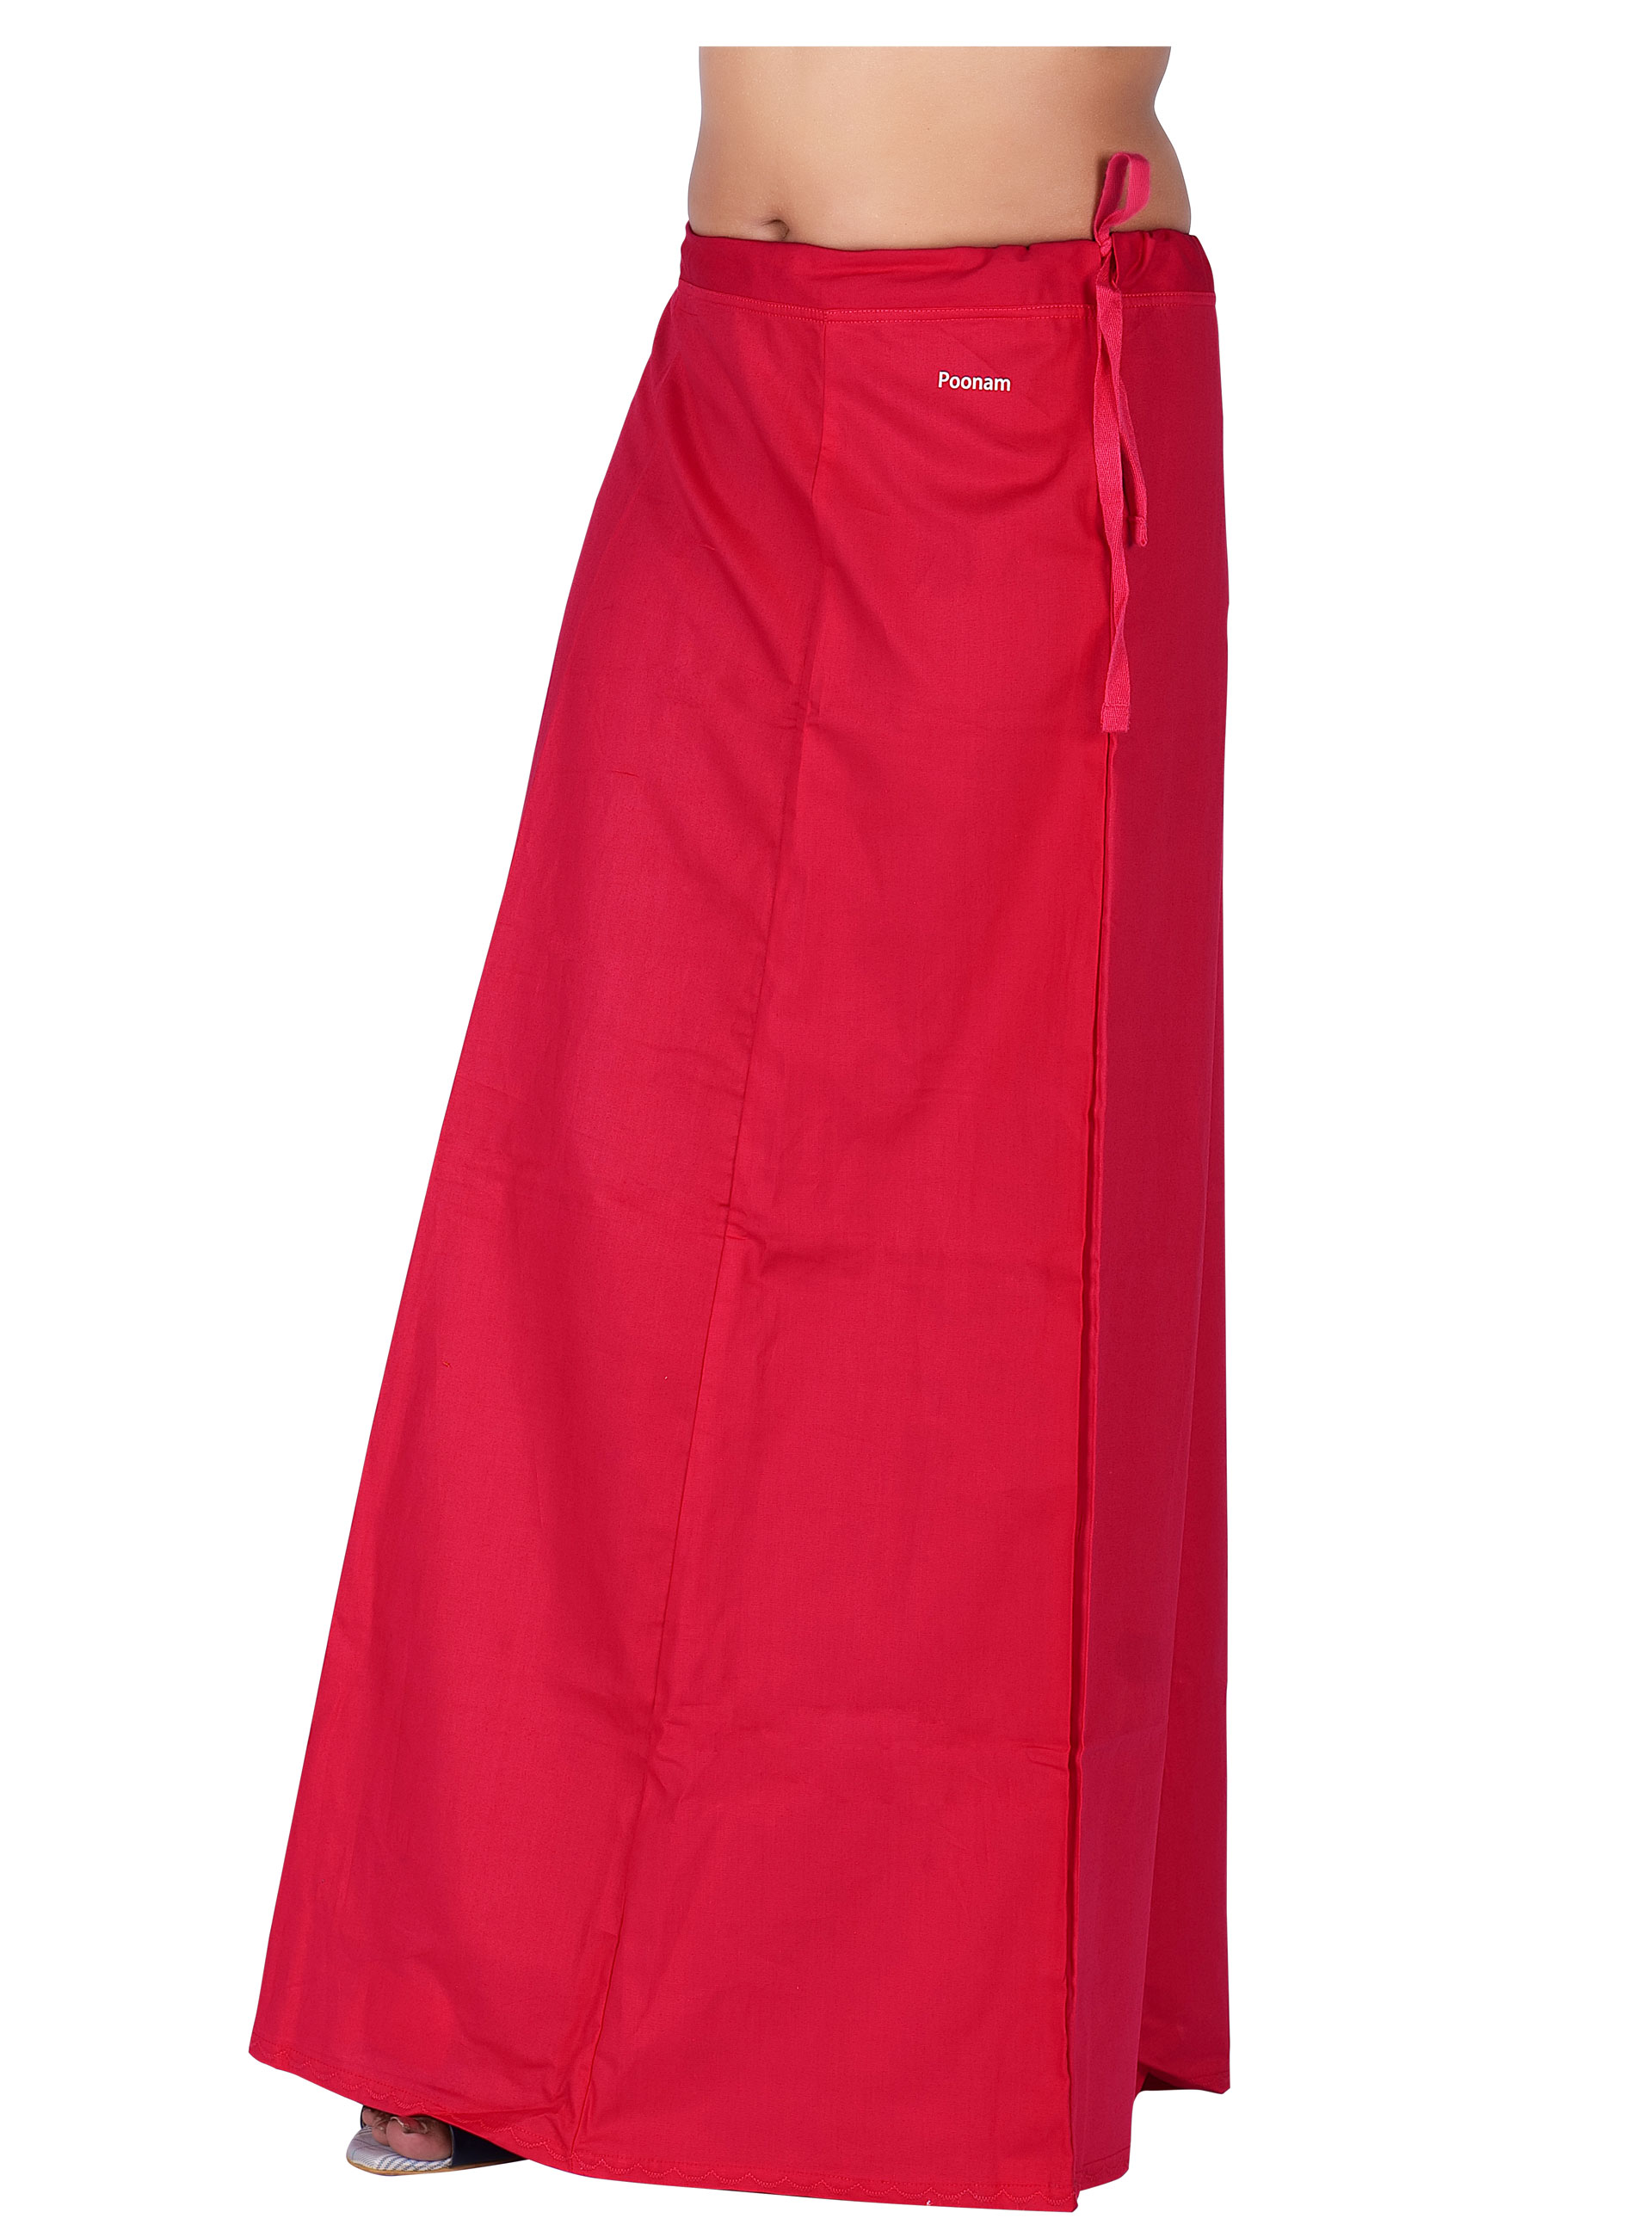 Red Color Aswati Premium Inskirts (8 PART)